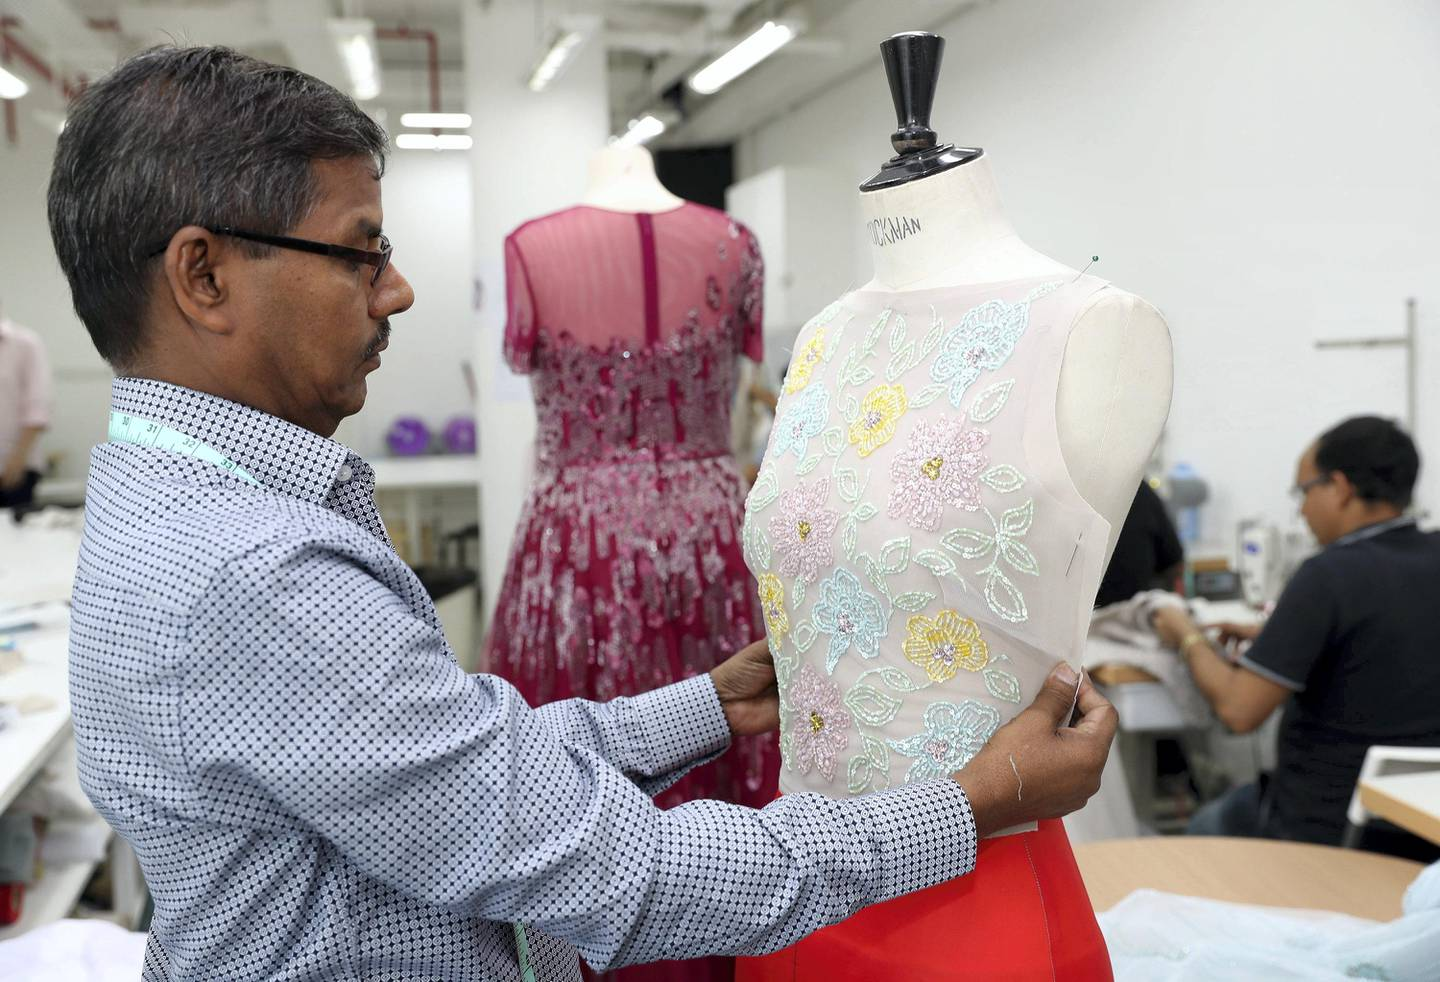 Dubai, United Arab Emirates - August 23rd, 2017: A feature on fashion designer Rami Al Ali & Karashash Nurakhmet a ESMOD fashion school intern. Karashash is designing clothes which will then be sold, and Rami Al Ali is helping lend his industry knowledge. Wednesday, August 23rd, 2017 at The Design District, Dubai. Chris Whiteoak / The National